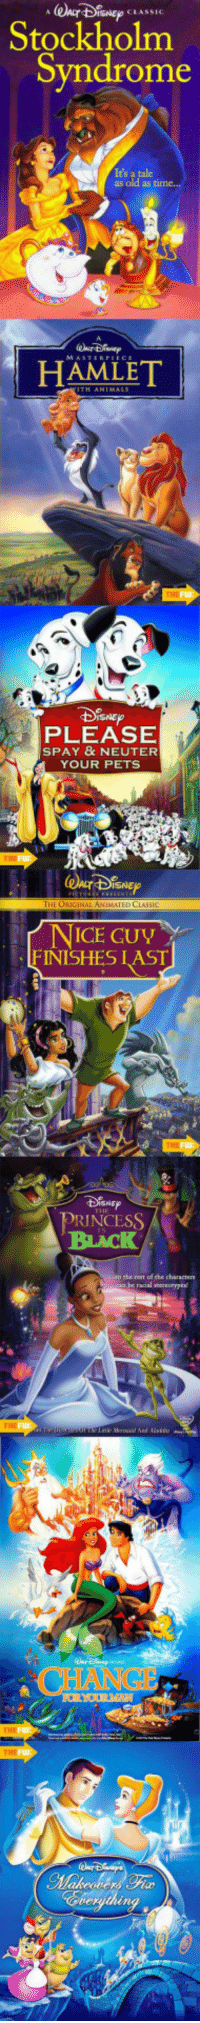 <p>Alternate Disney Film Titles That Work Better.</p>: Stockholm  Syndrome  It's a tale  as old a  HAMLET  PLEASE  SPAY & NEUTER  YOUR PETS  SNE  NICE GUY  FINISHES I  RINCESS  BLACK  tbe rest oé the characters <p>Alternate Disney Film Titles That Work Better.</p>